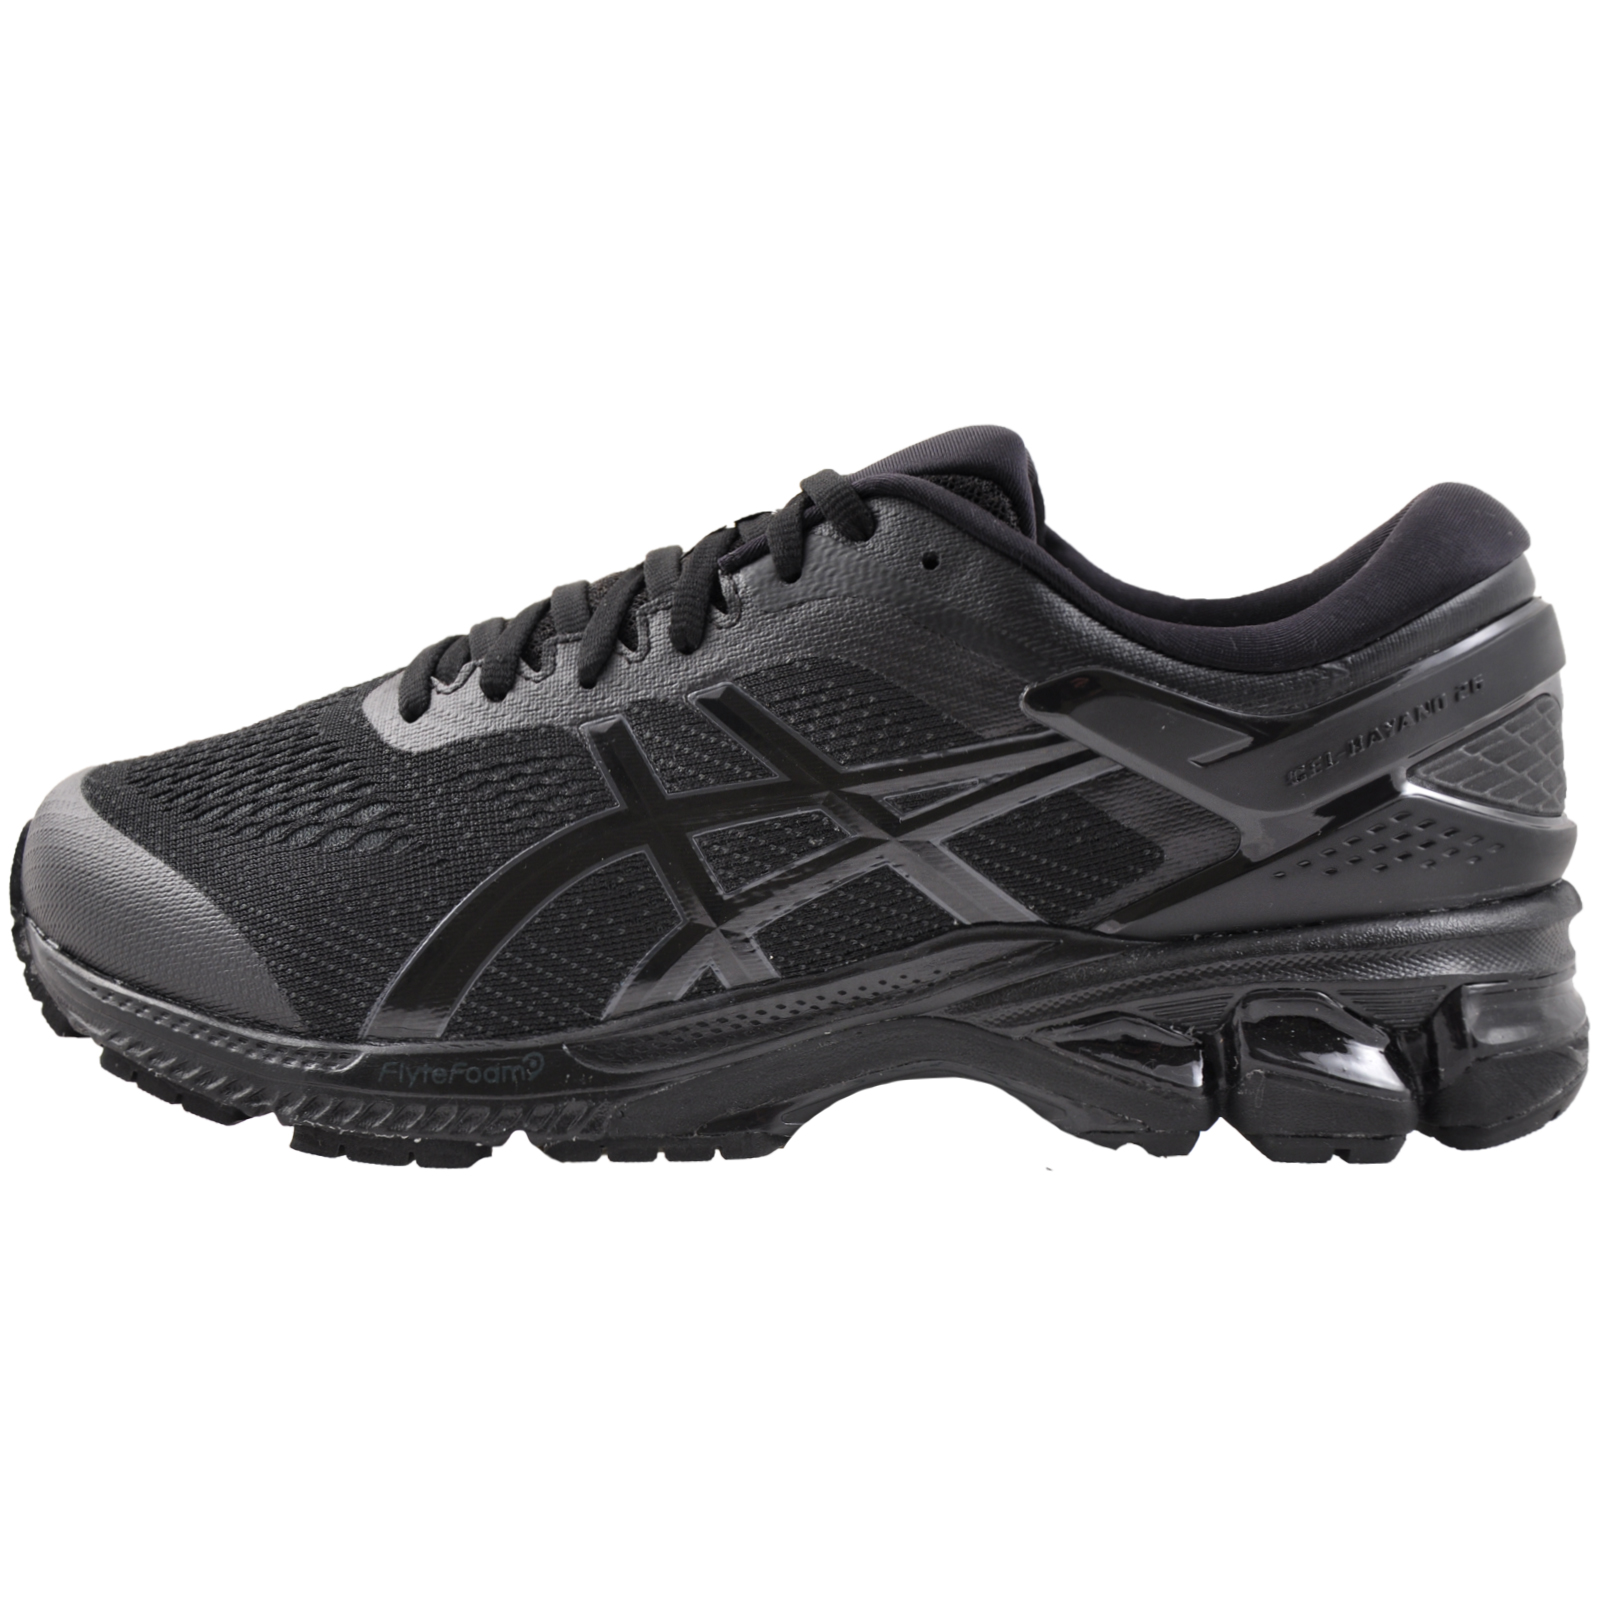 Details zu Asics Gel Kayano 26 Men's Premium Elite Running Shoes Trainers 2E Wide Fit